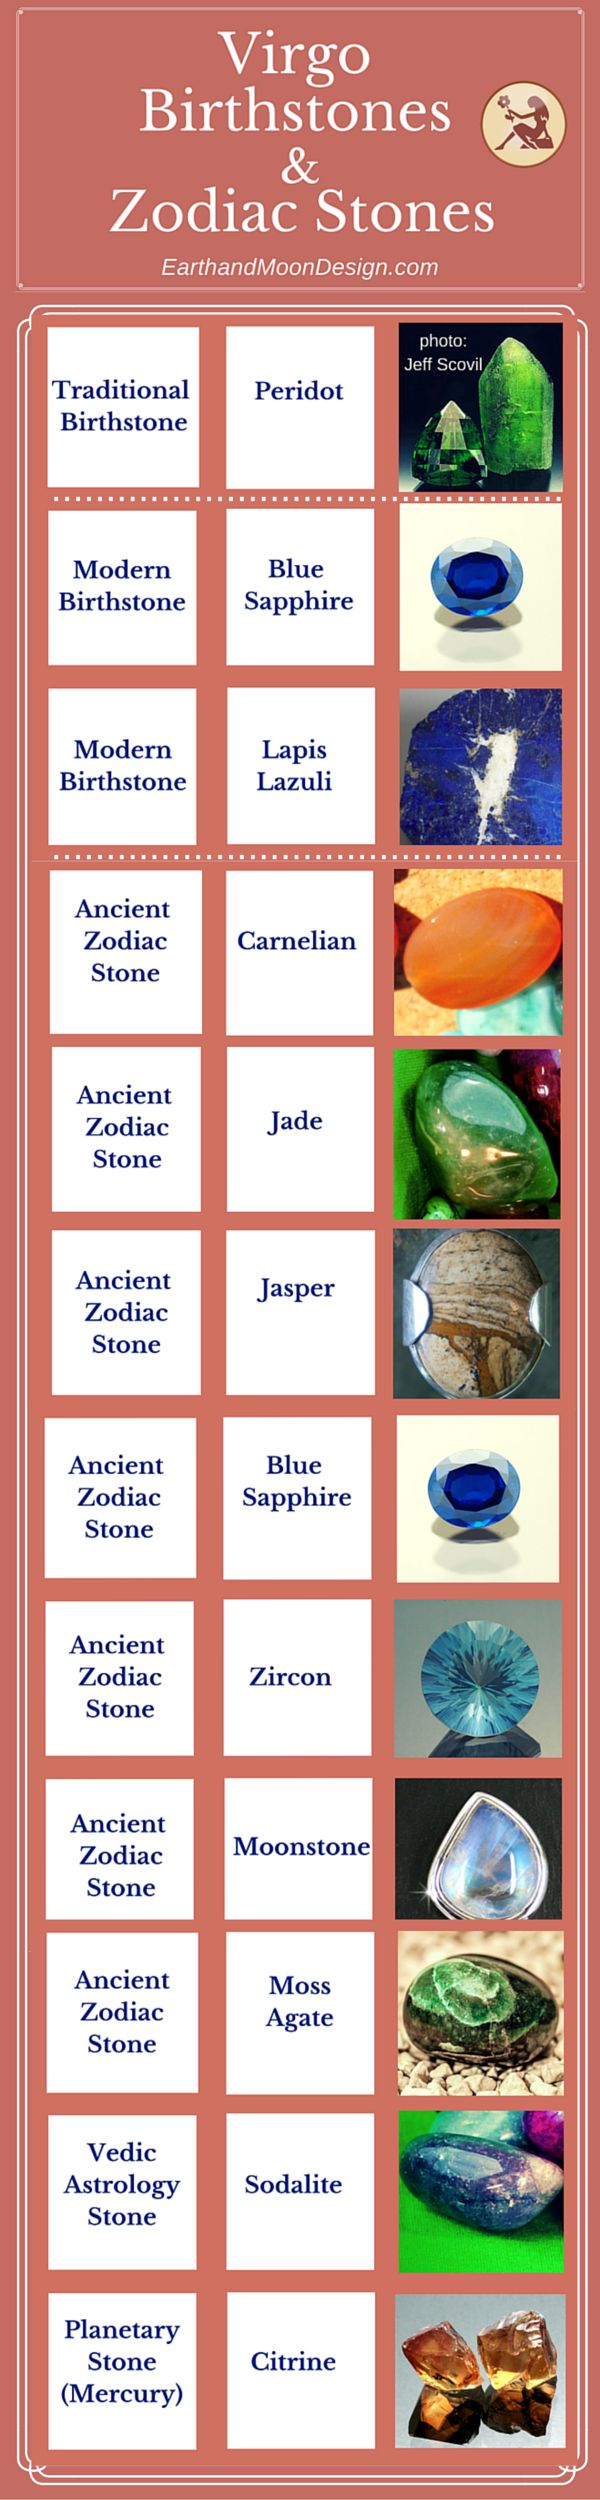 The stars predict a wonderful year ahead for the Virgo woman. Celebrate these maidens of great charm and intelligence with elegant handmade birthstone jewelry gifts. Use our Virgo Zodiac stone and Virgo Birthstone list to guide you.